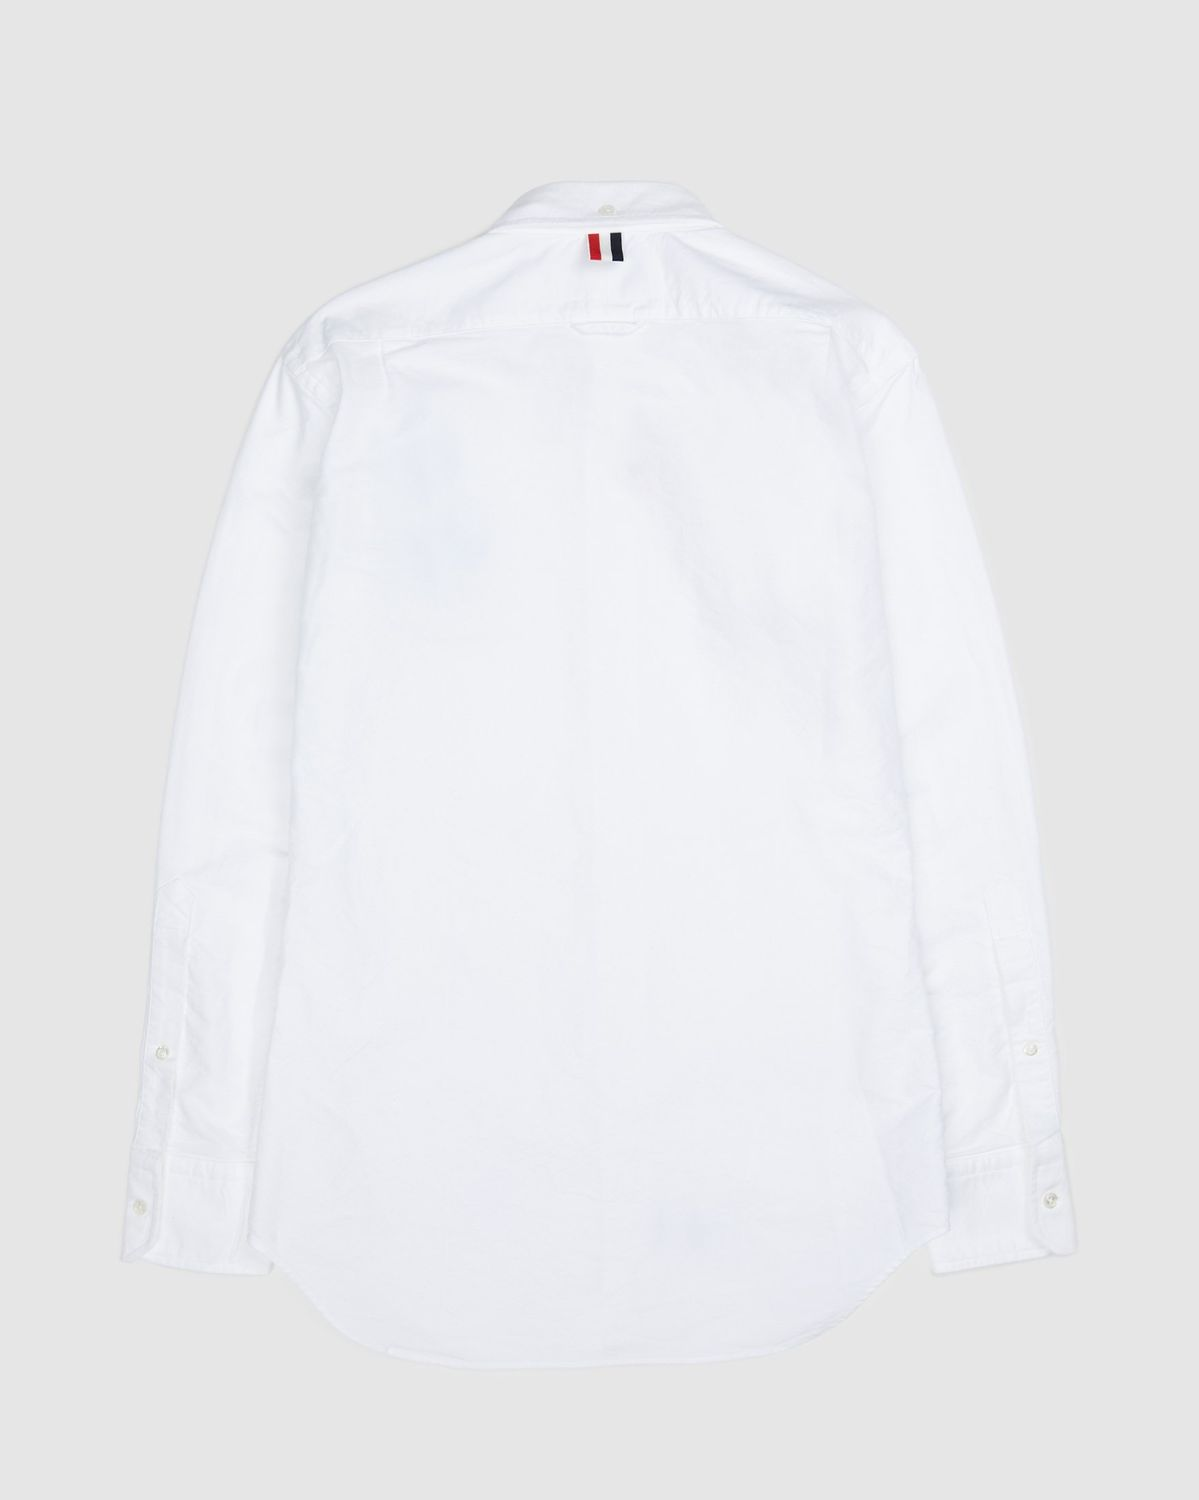 Colette Mon Amour x Thom Browne — White Heart Classic Shirt - Image 2